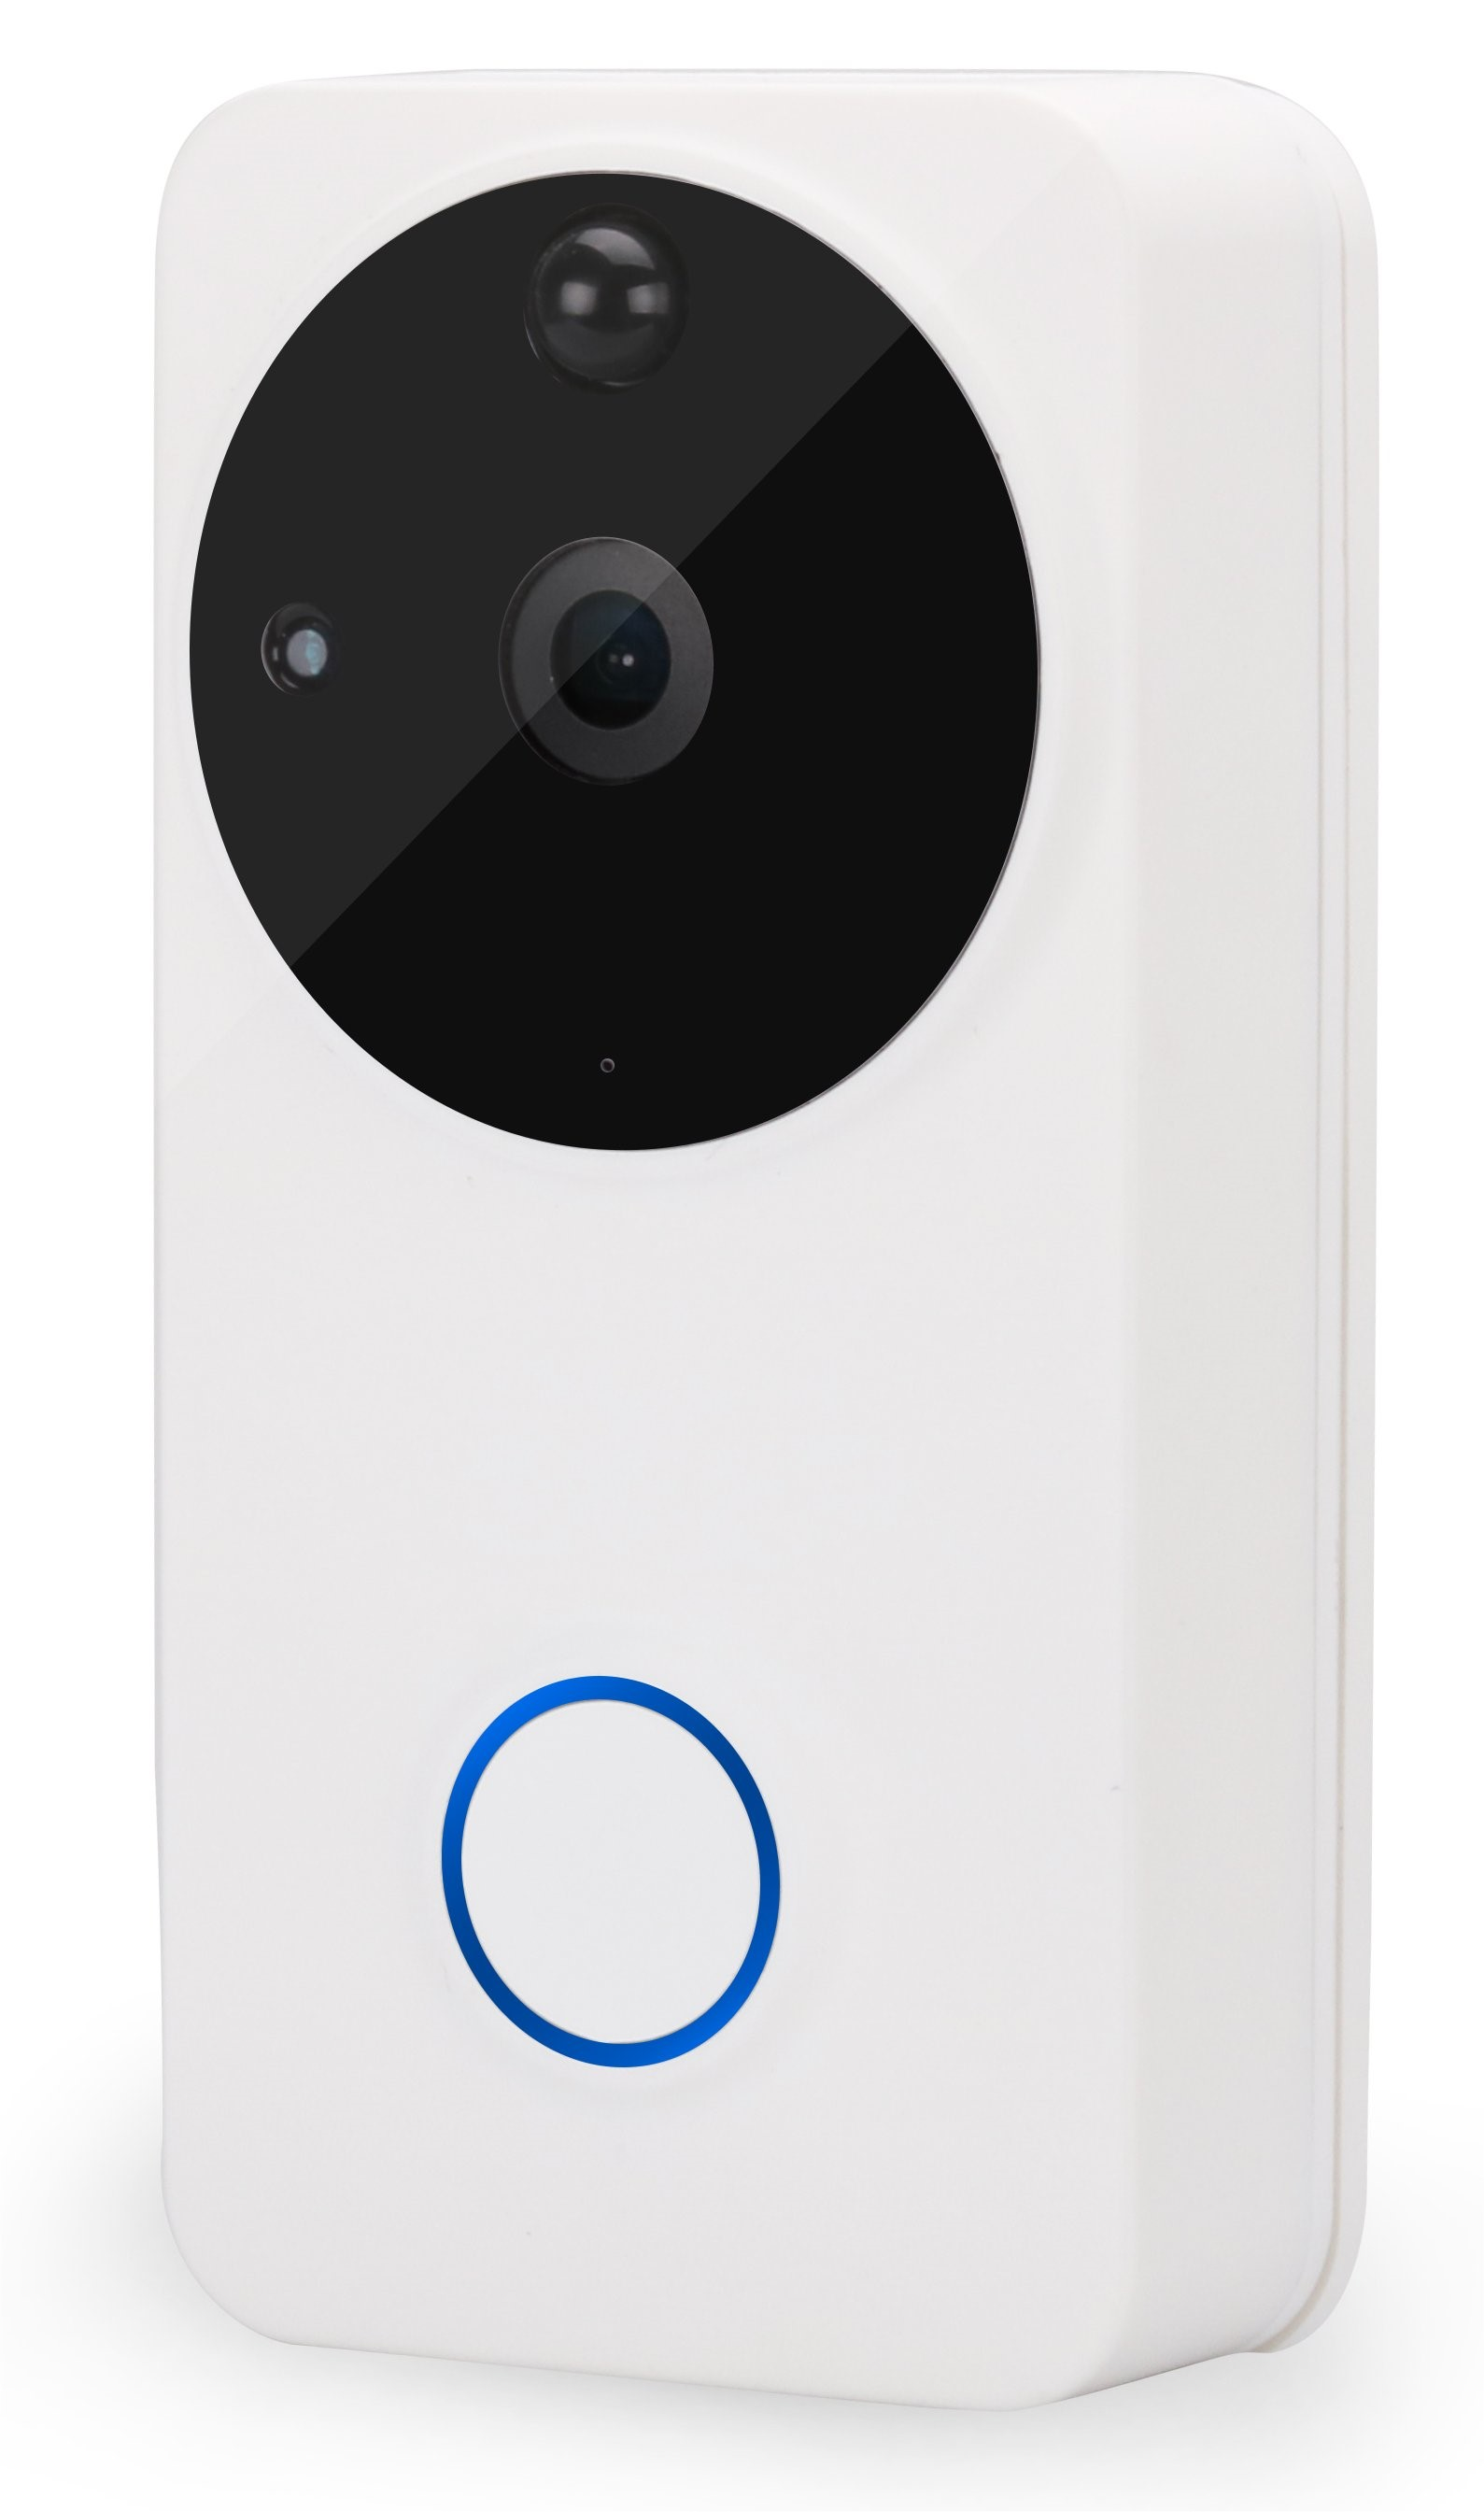 The Security Network for White Smart Door Bell in England, Wales, UK